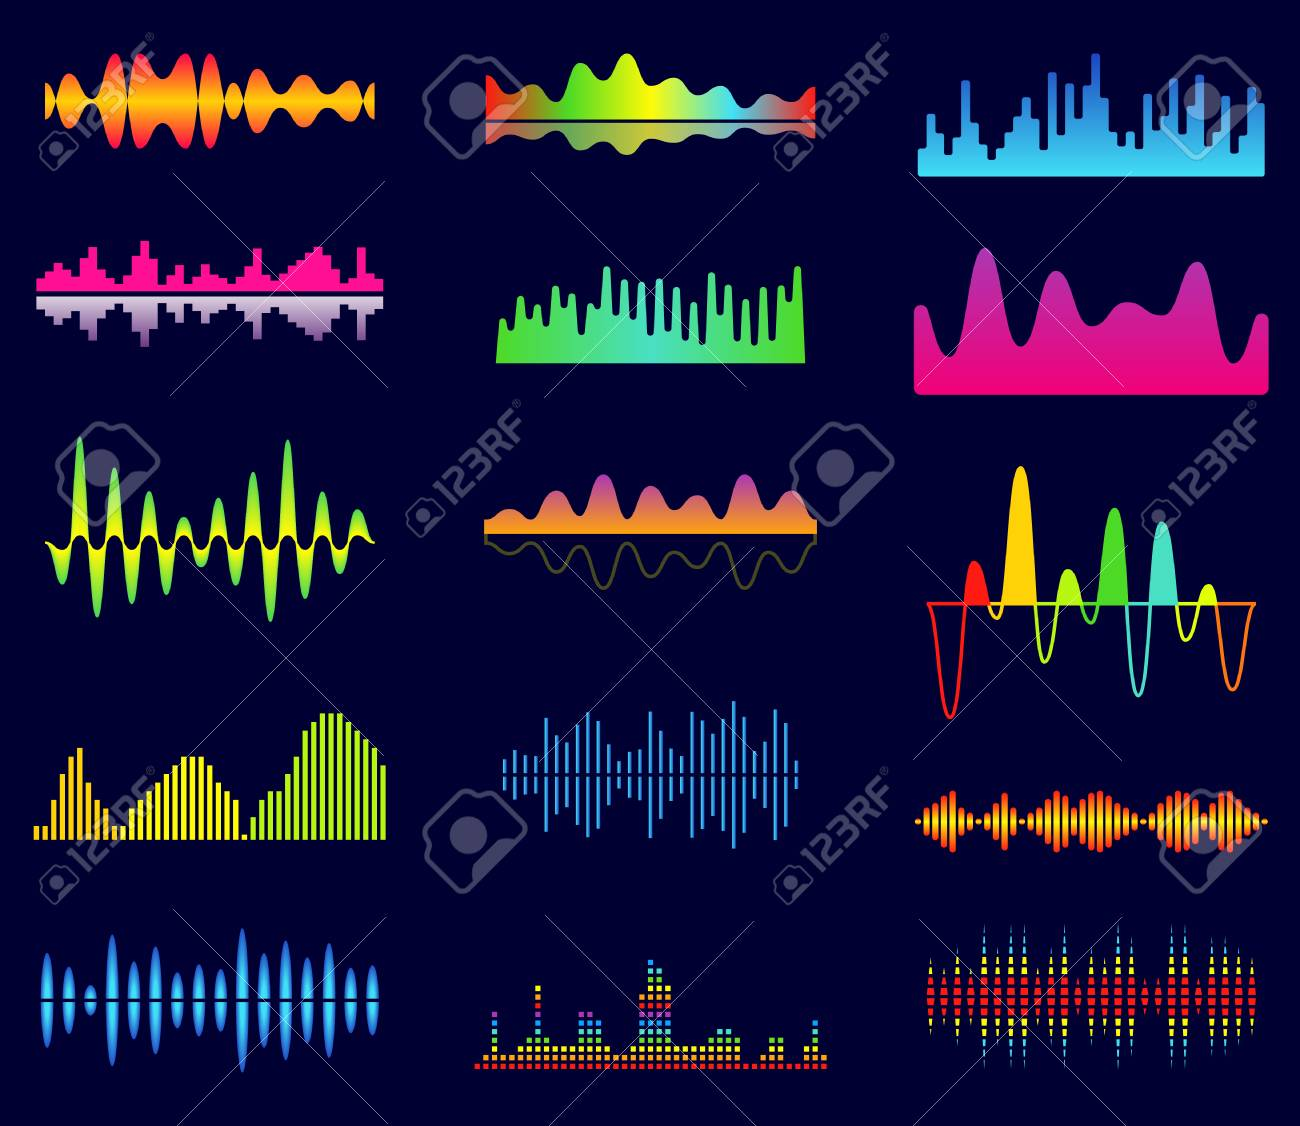 Music equalizer, audio analog waves, studio sound frequency,